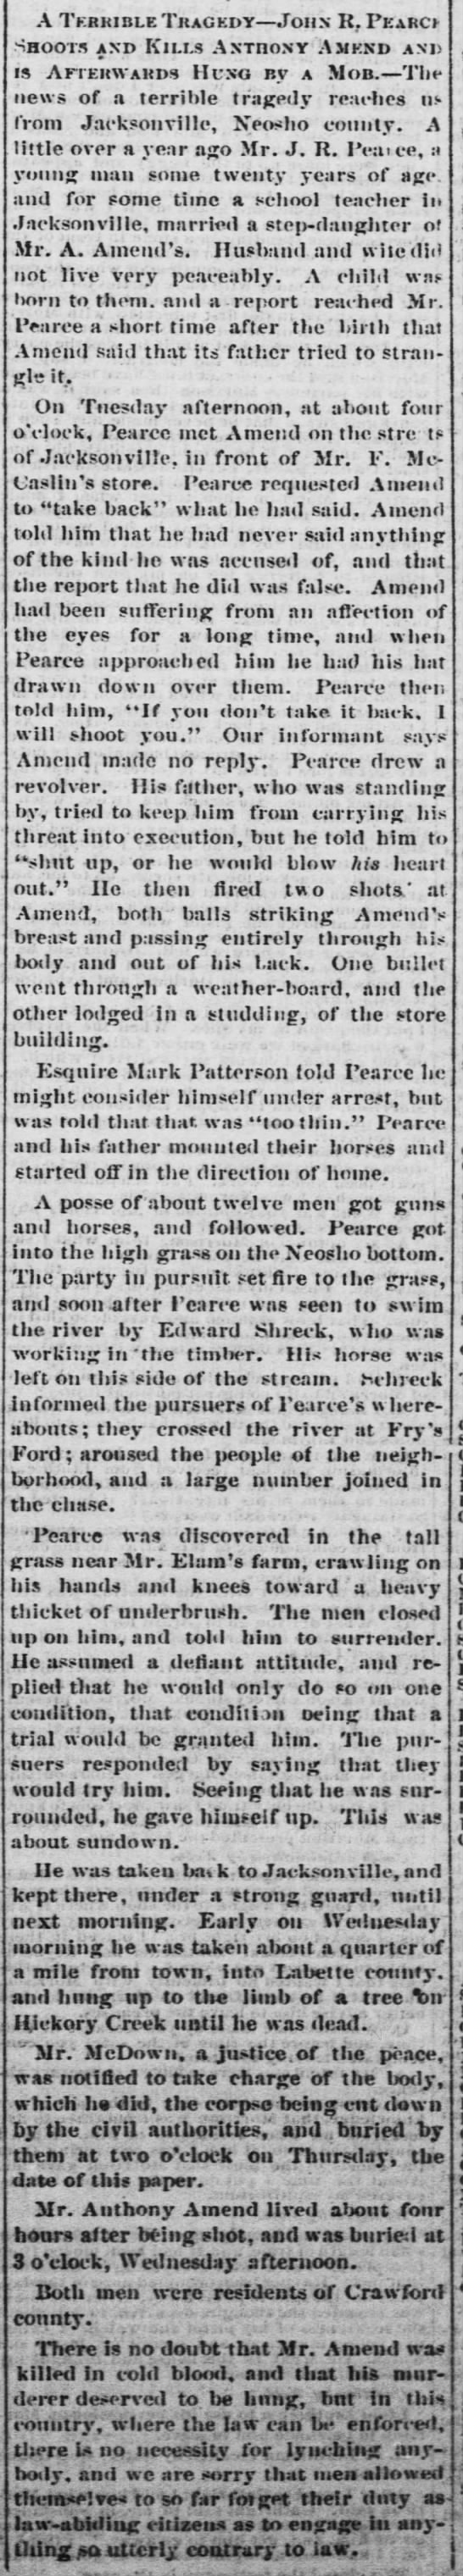 Anthony Amend murder and the lynching of John R Pearce. -